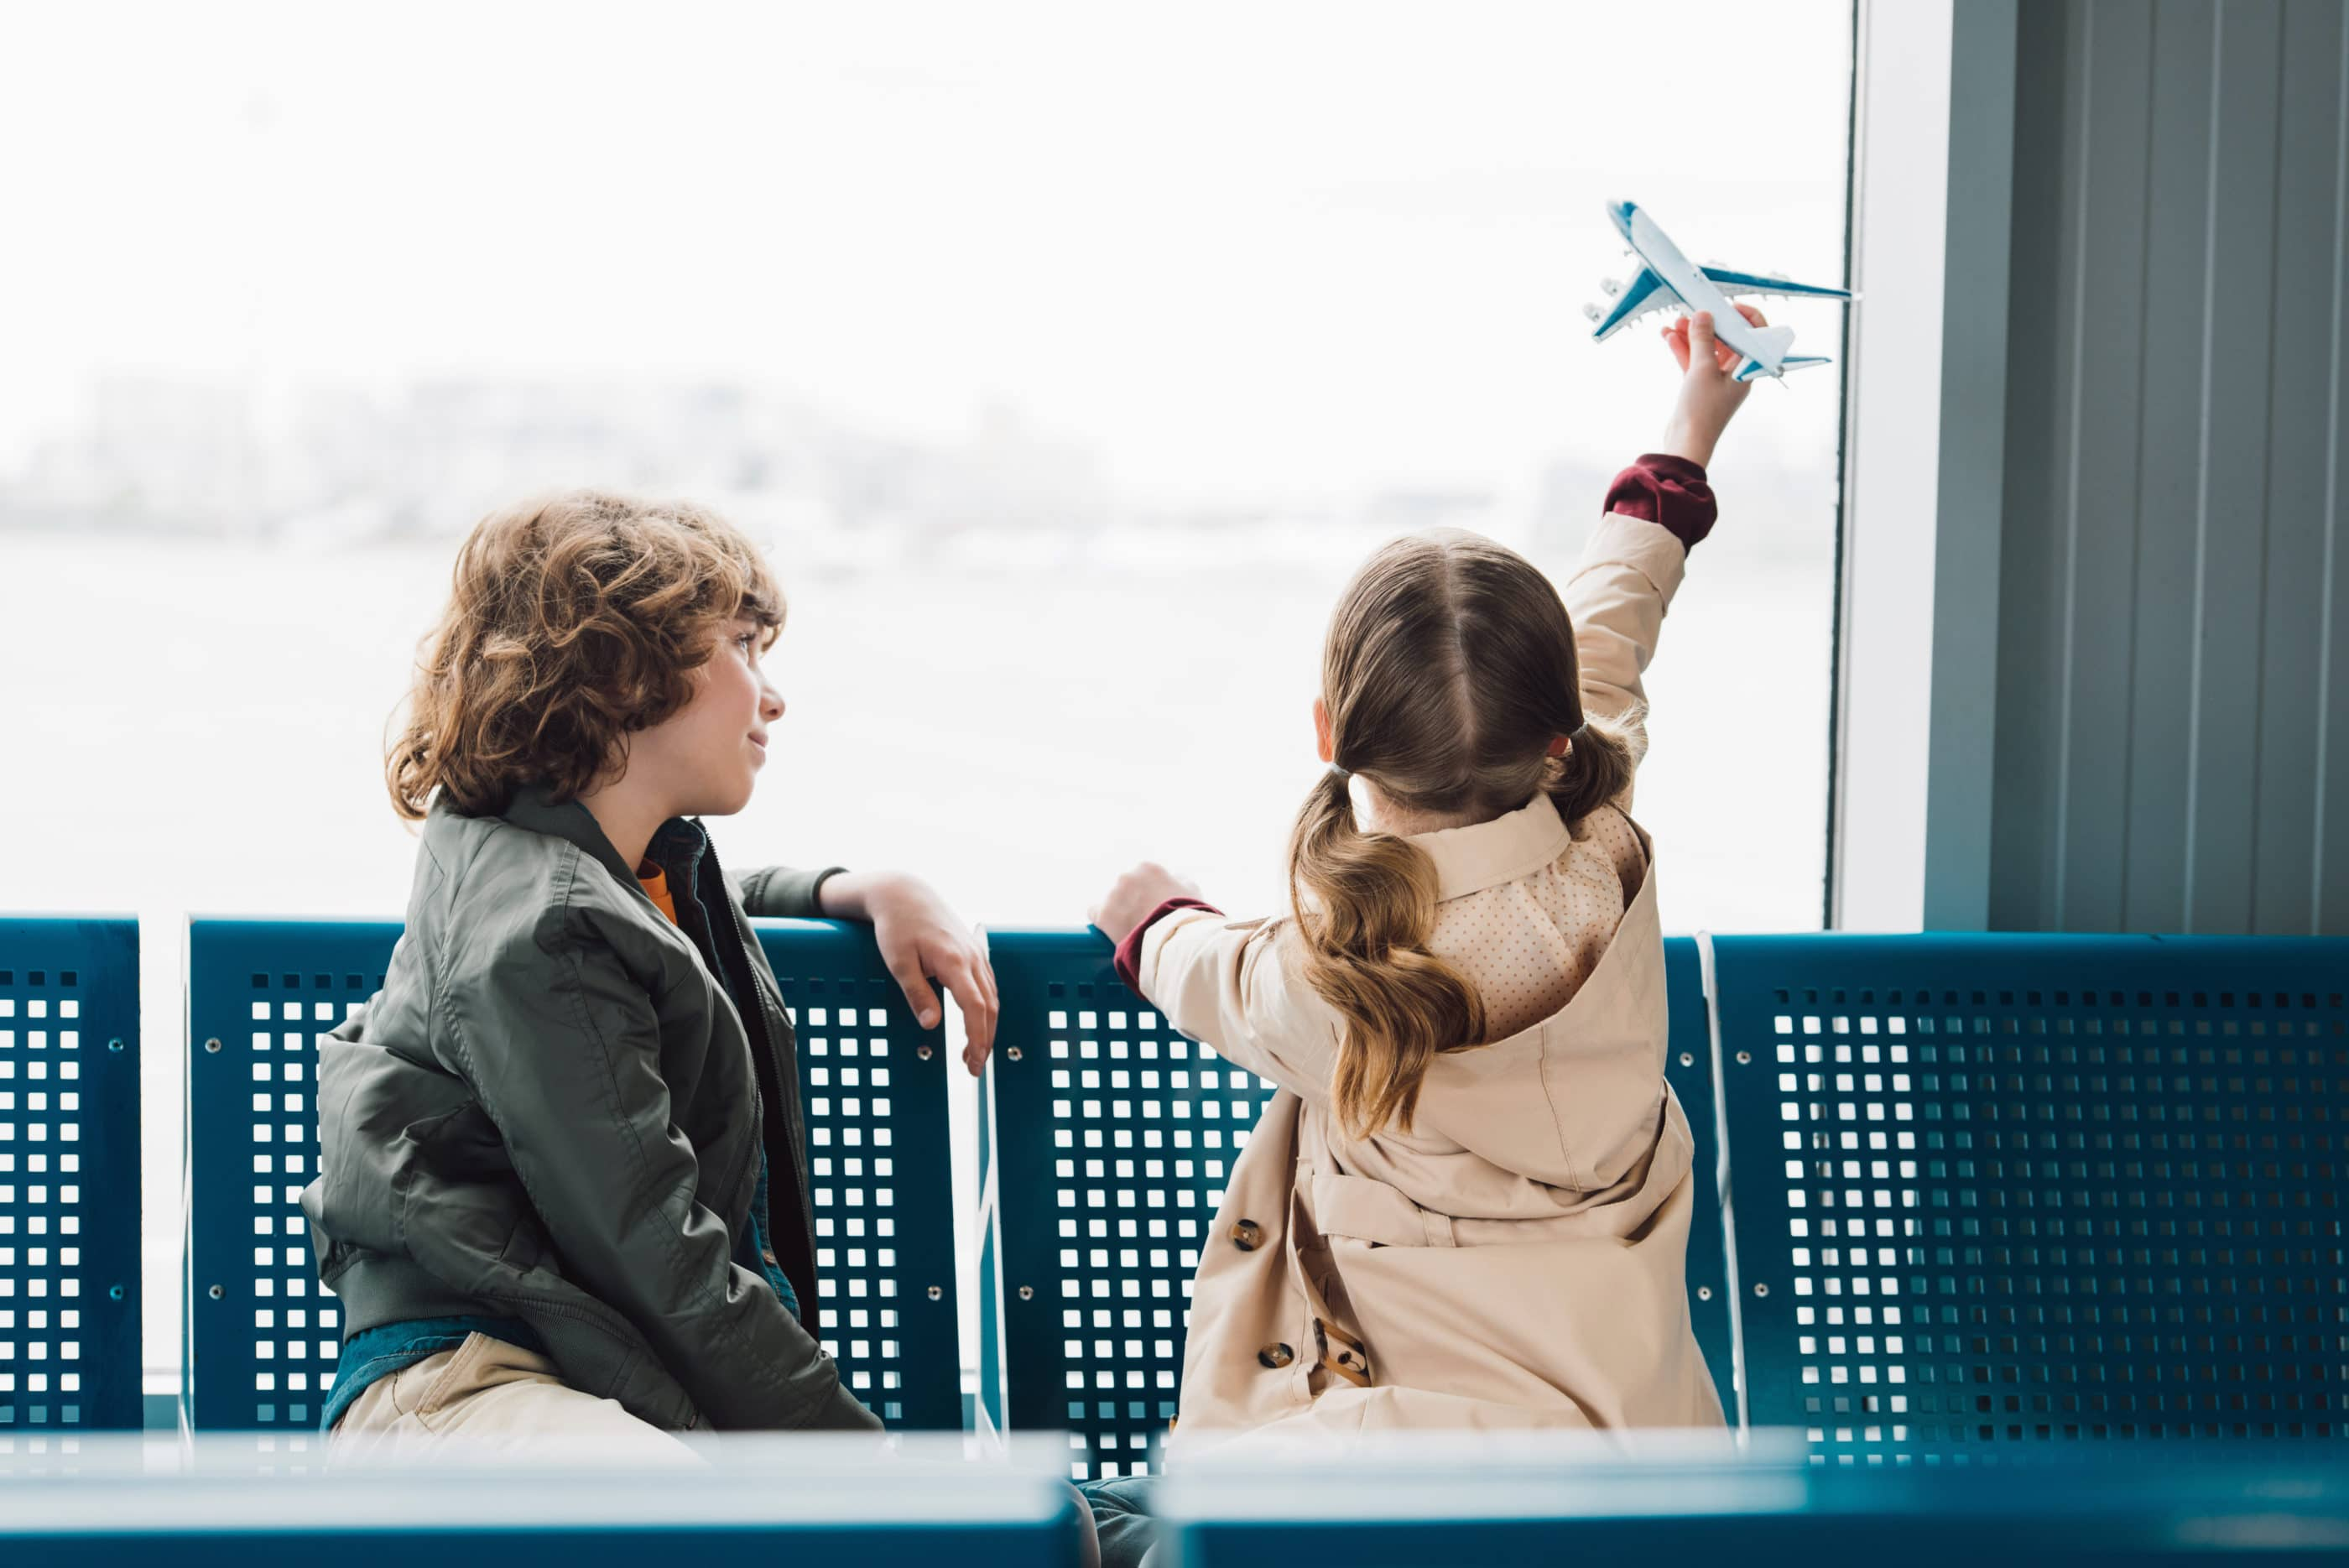 Travel with kids: A little girl flies a toy plane in her hand while a boy waits next to her in the airport.